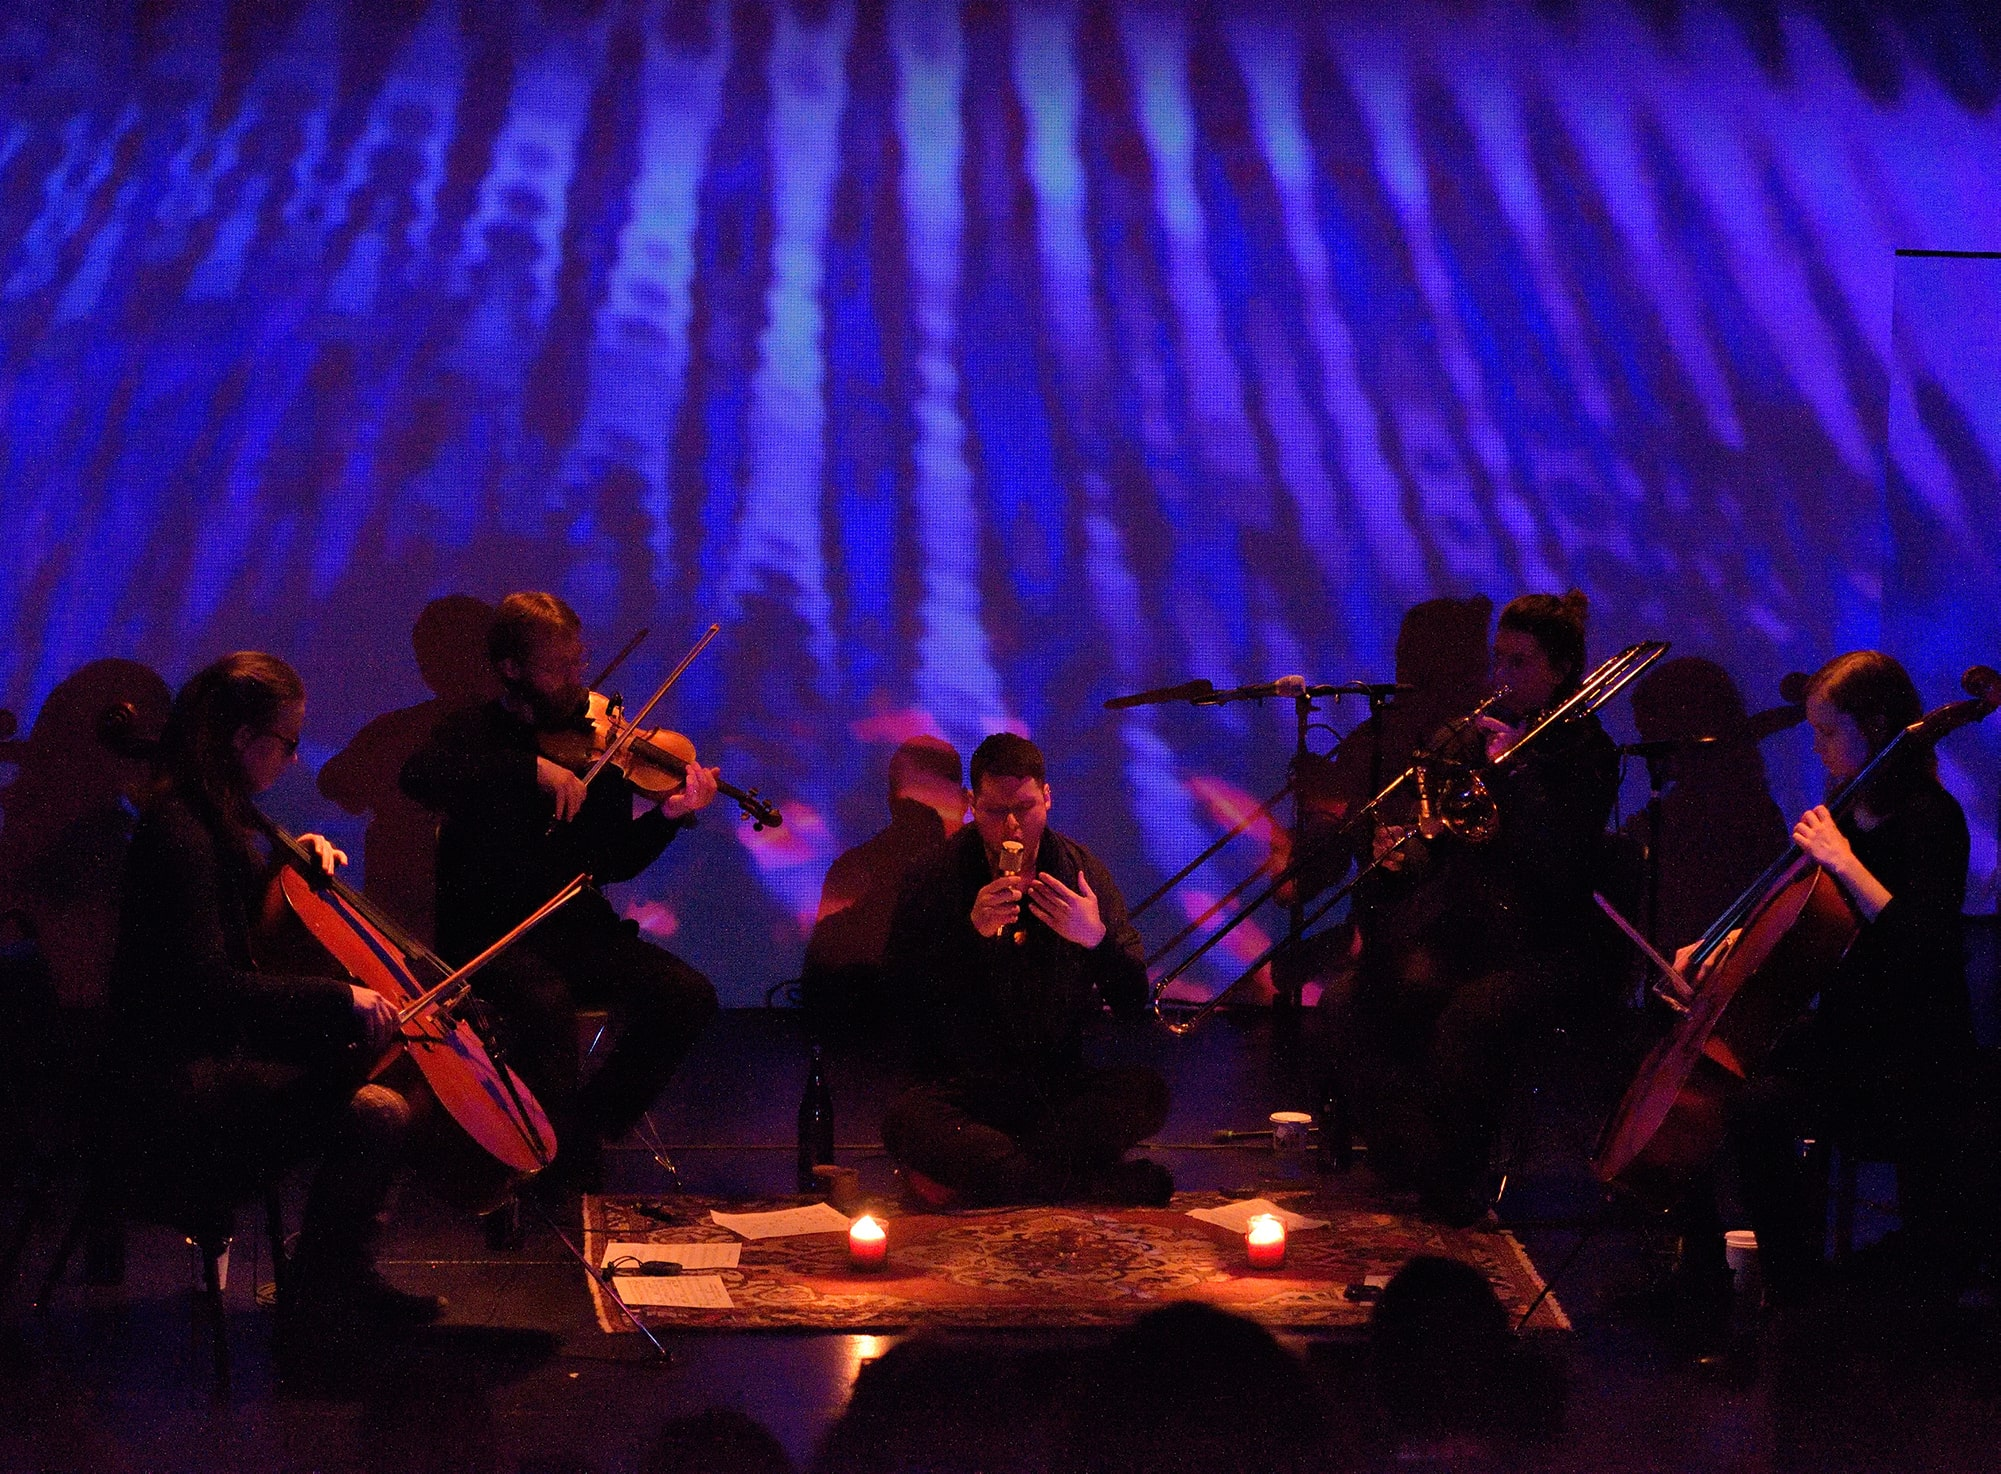 Randy Gibson and Ensemble performing Gibson's <em>Apparitions of The Four Pillars in The Midwinter Starfield under The Astral 789 Duet</em> at the 2015 Avant Music Festival